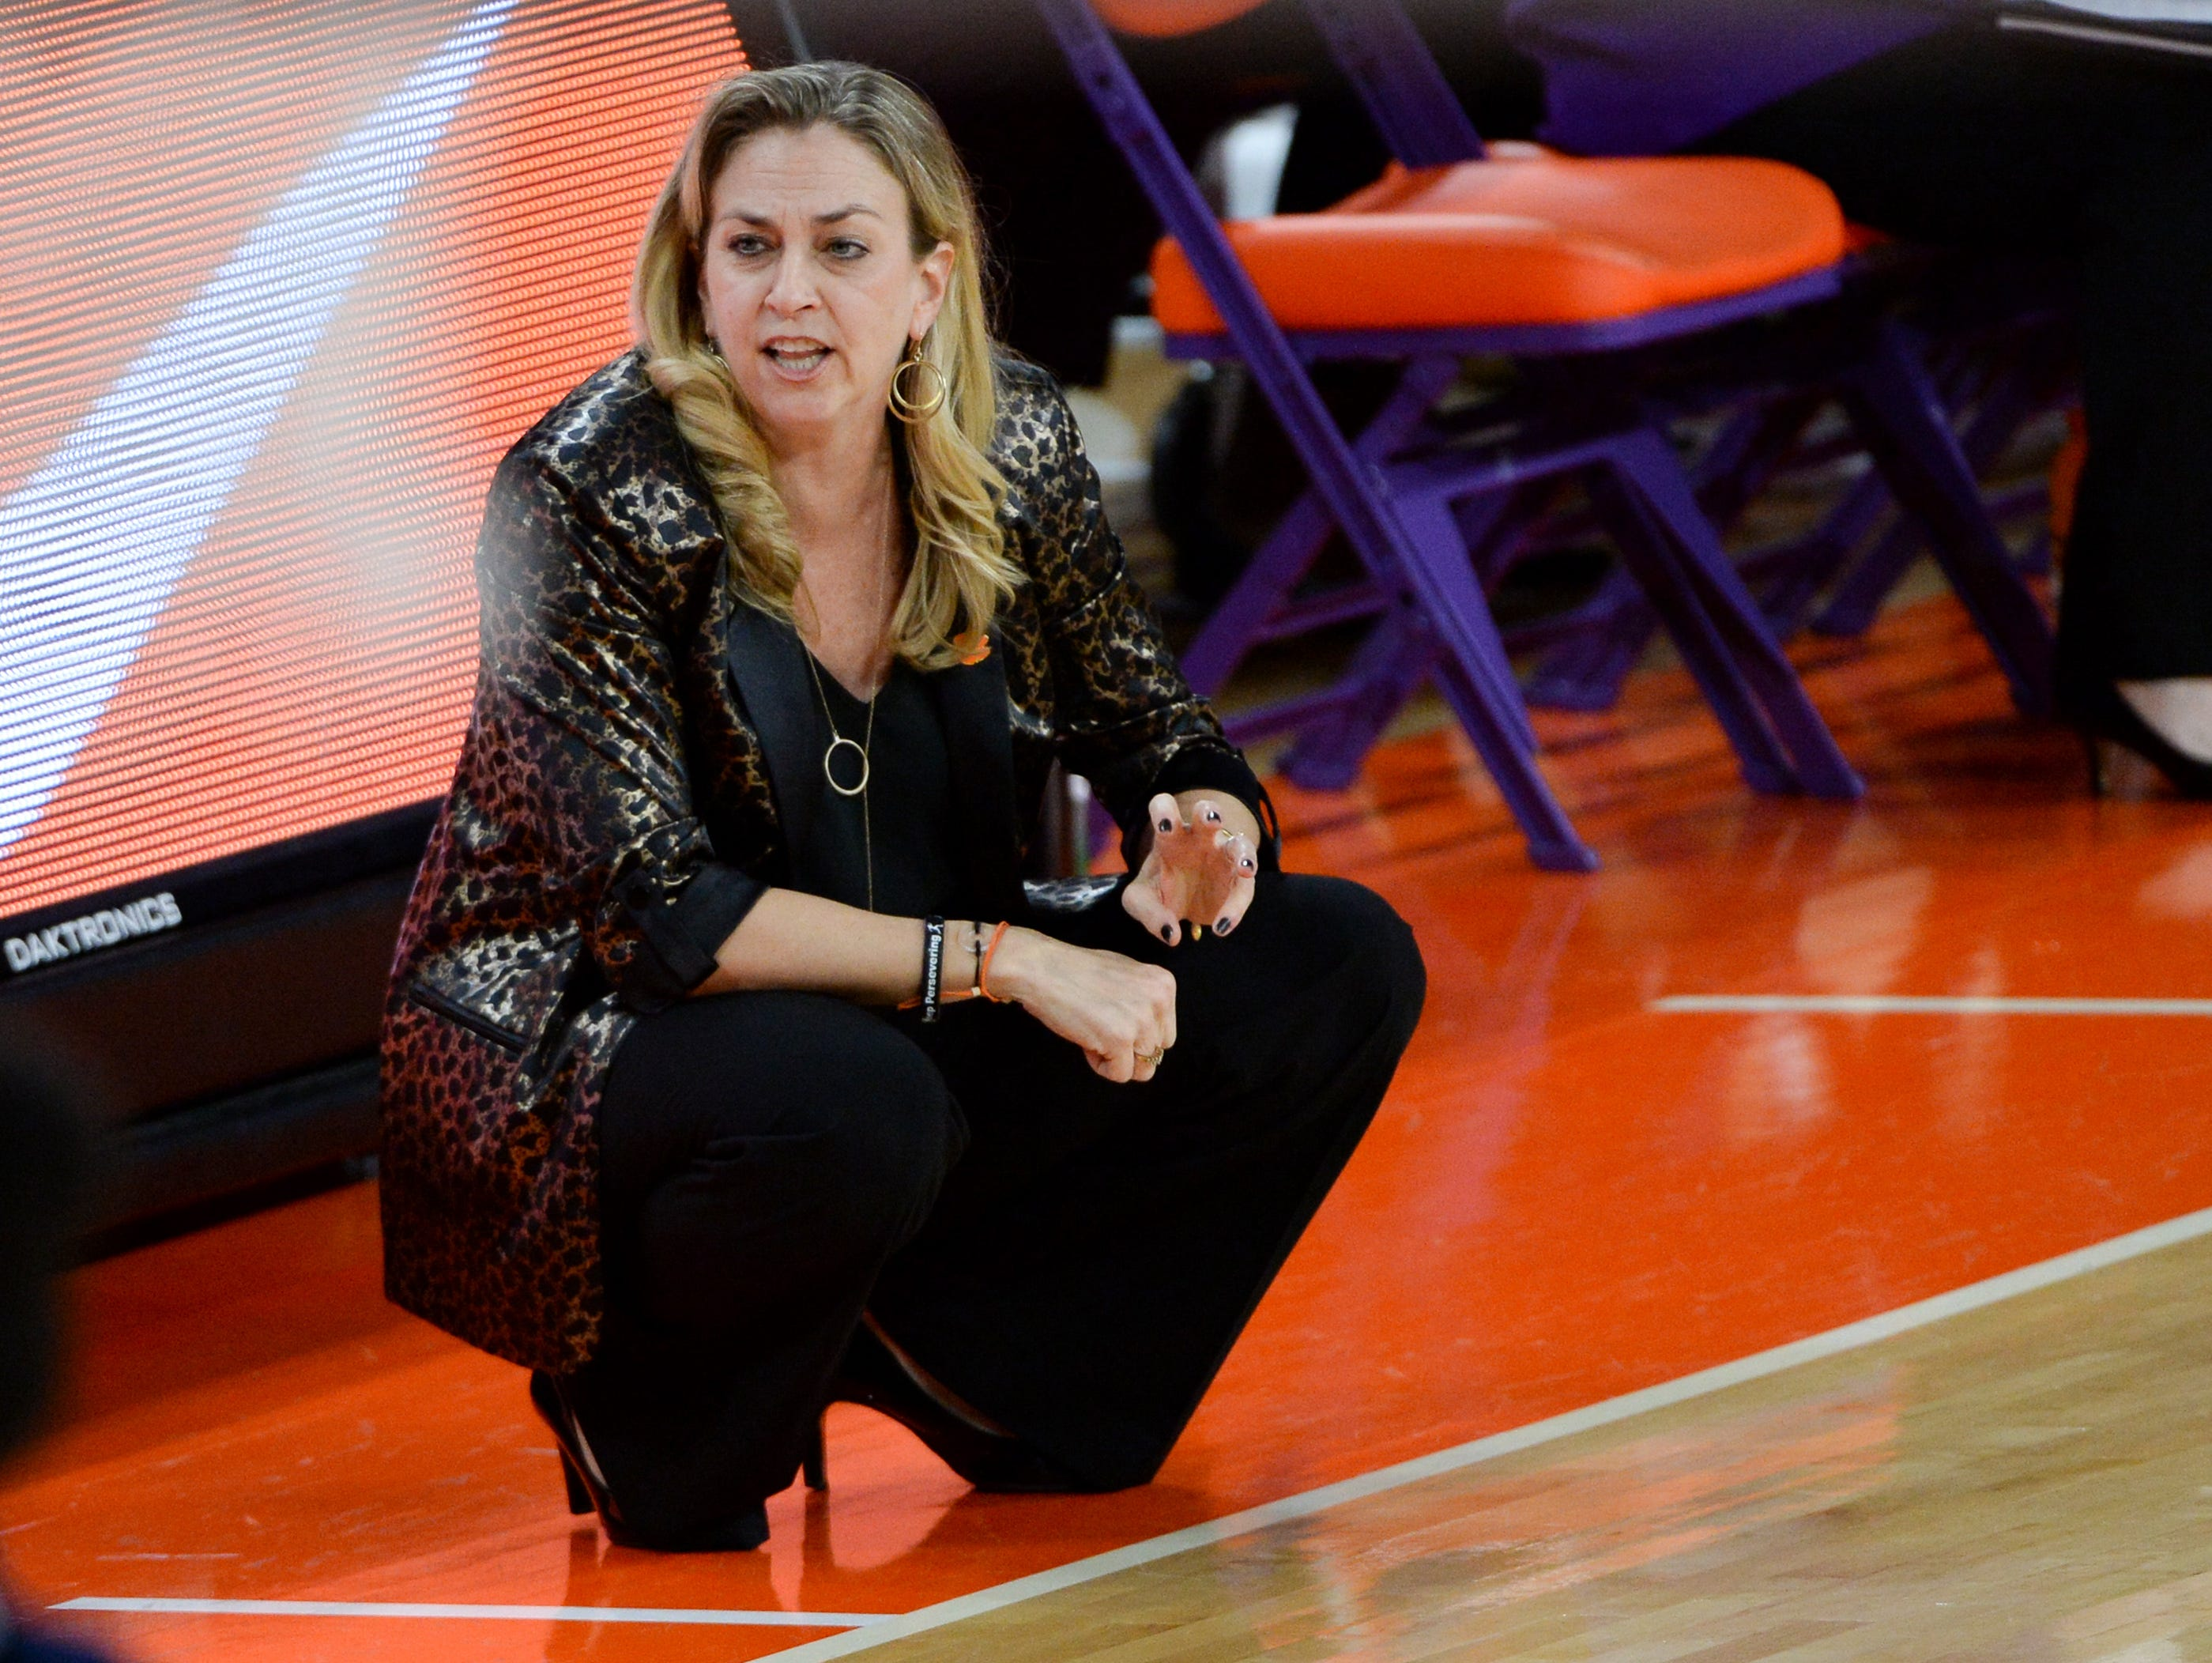 Clemson Head Coach Amanda Butler during the first quarter at Littlejohn Coliseum in Clemson Thursday, January 17, 2019.